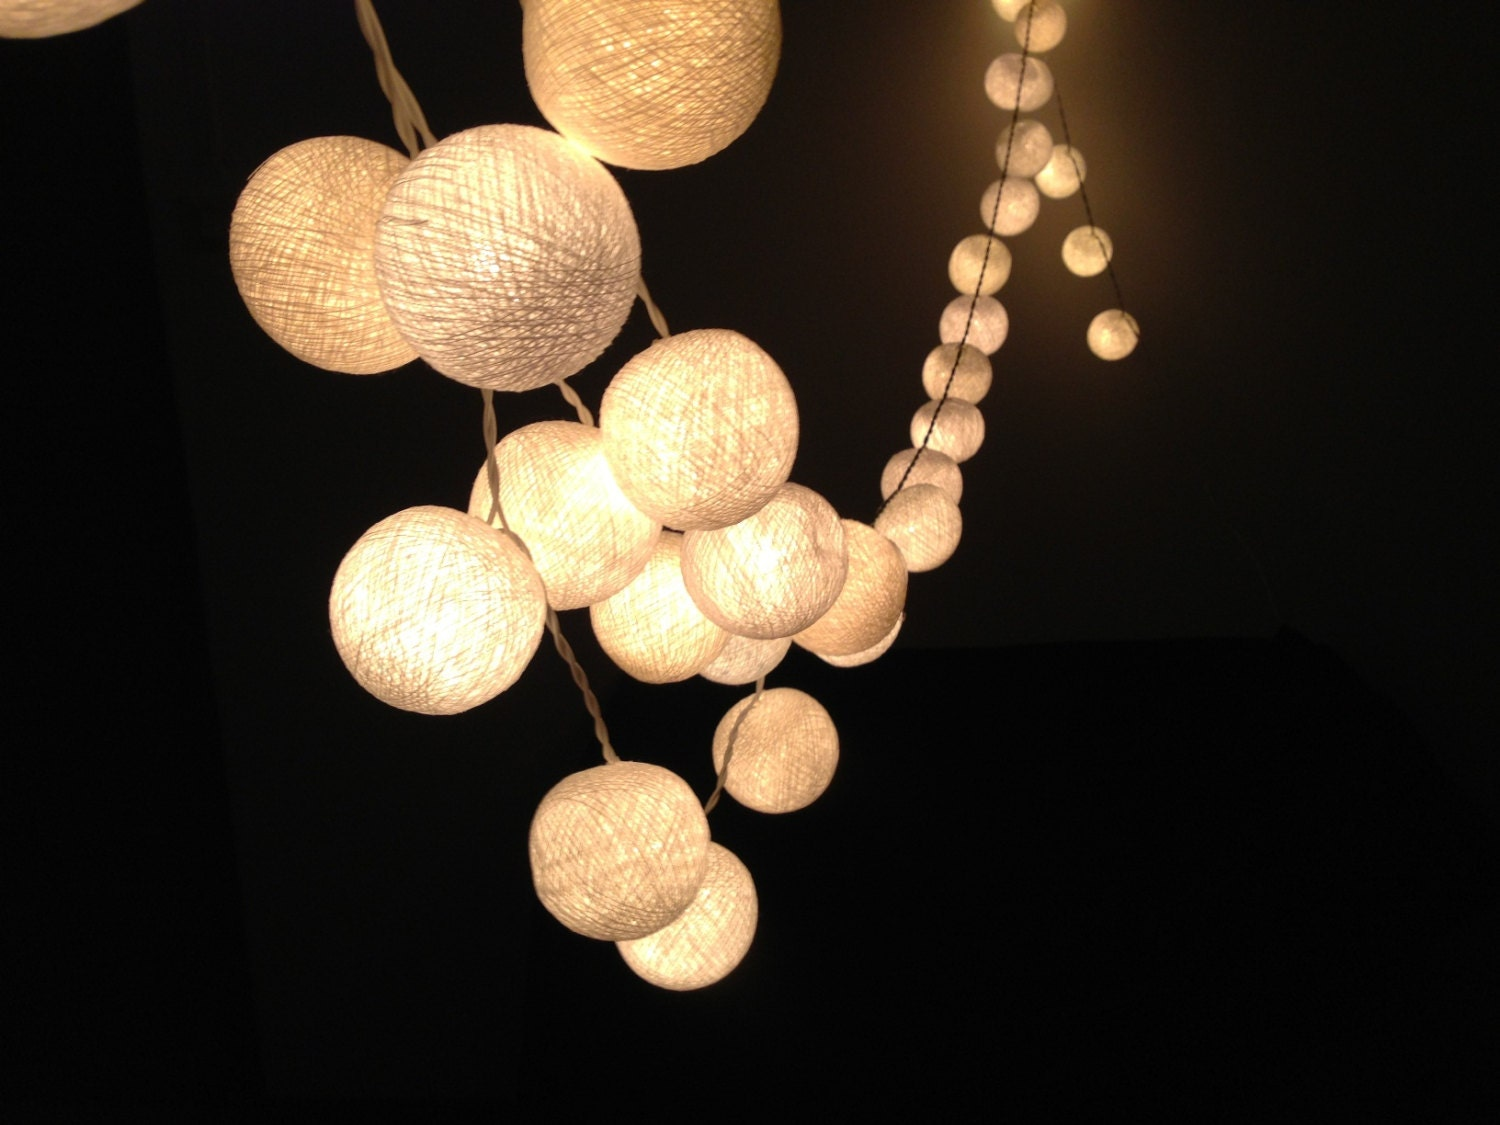 White cotton ball string lights for Patio,Wedding,Party and Decoration (20 bulbs), fairy lights